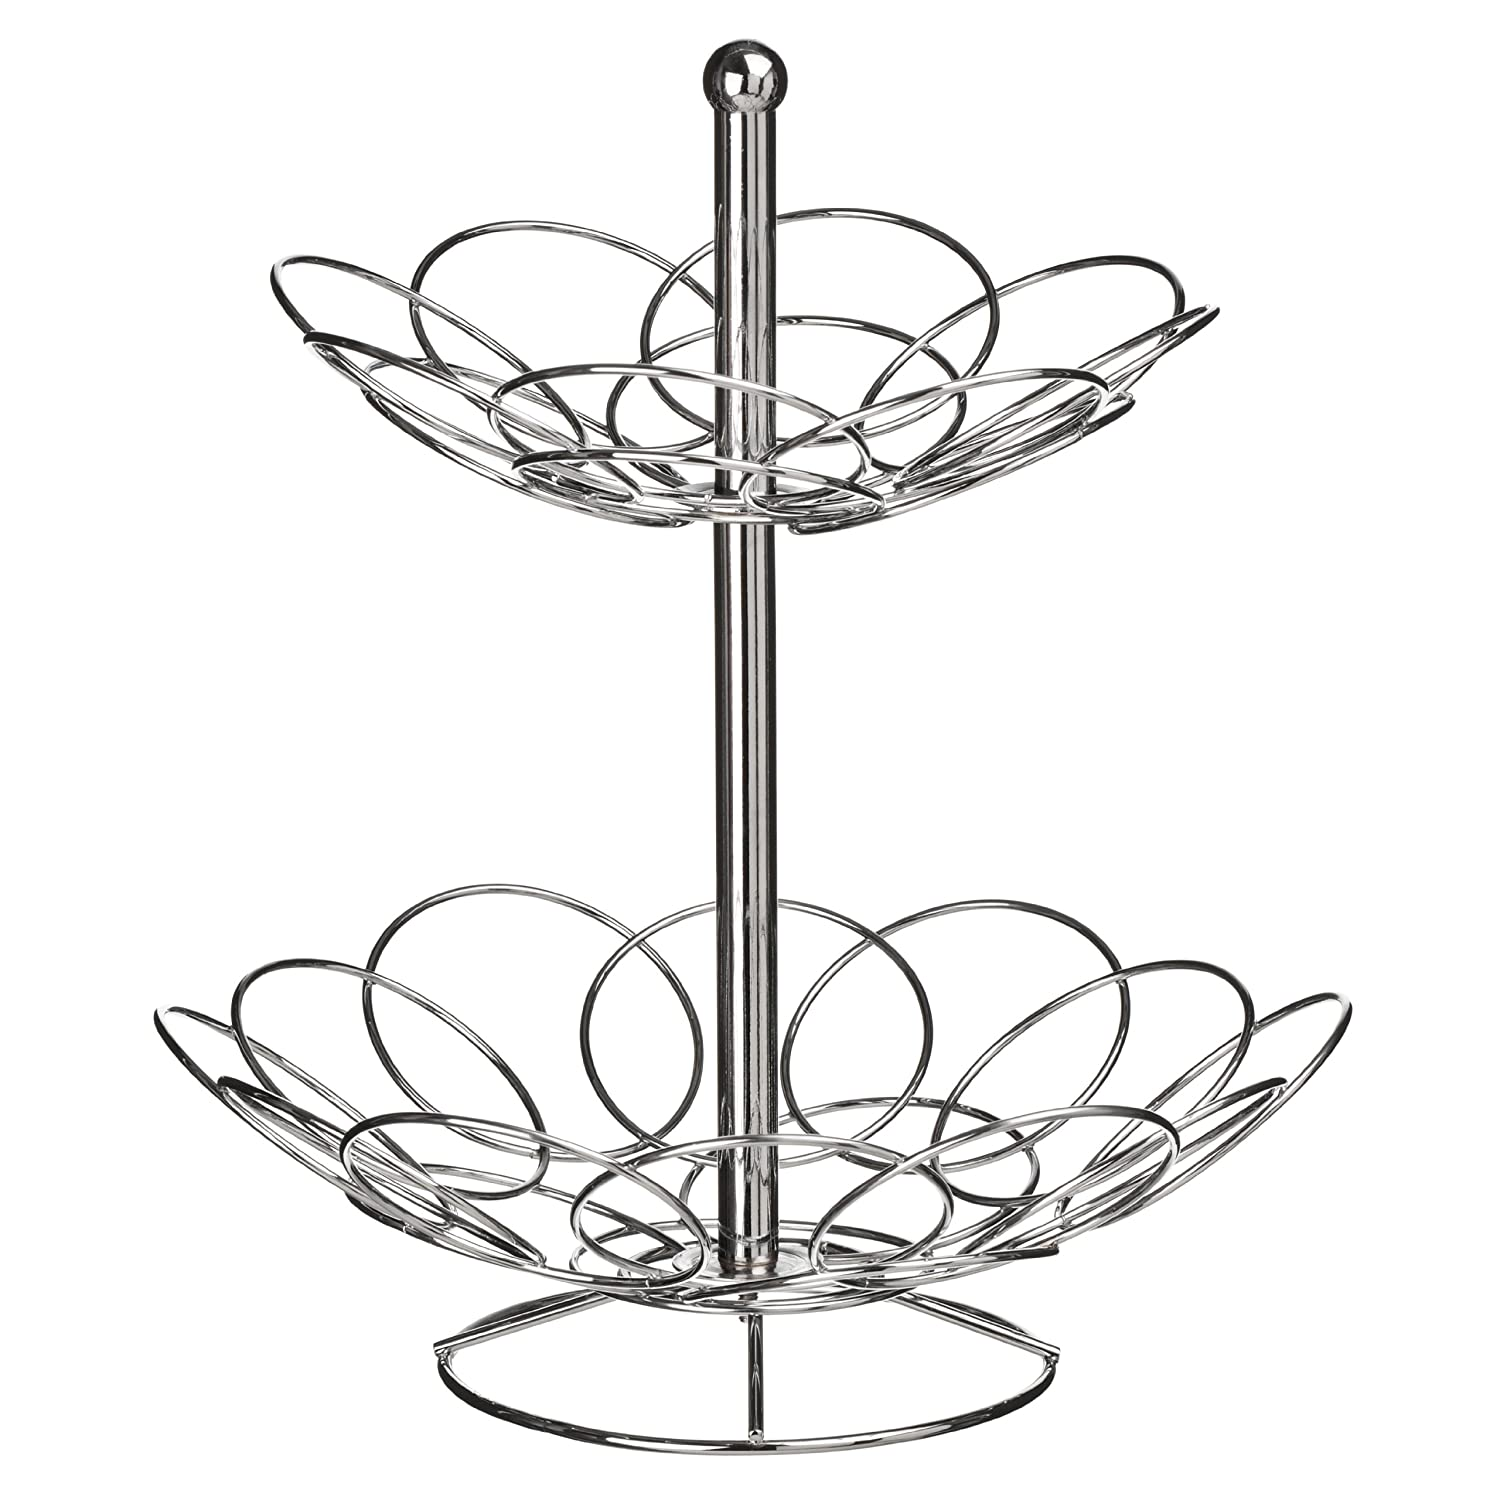 Premier Housewares Ellipse 2-Tier Fruit Basket - Chrome KitchenCenter 0509790 0509790_Silver